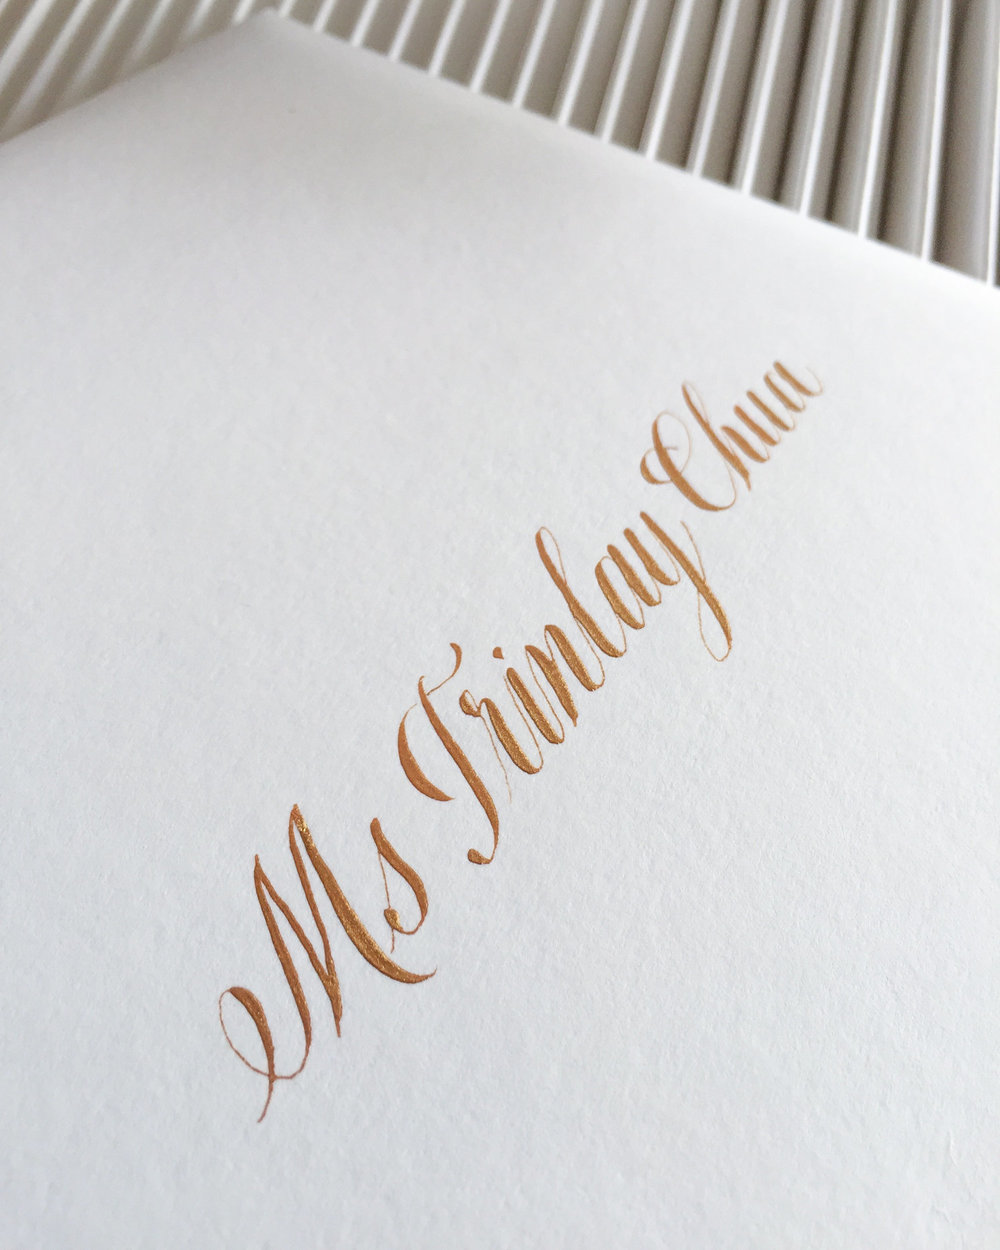 Envelope Addressing Calligraphy Singapore